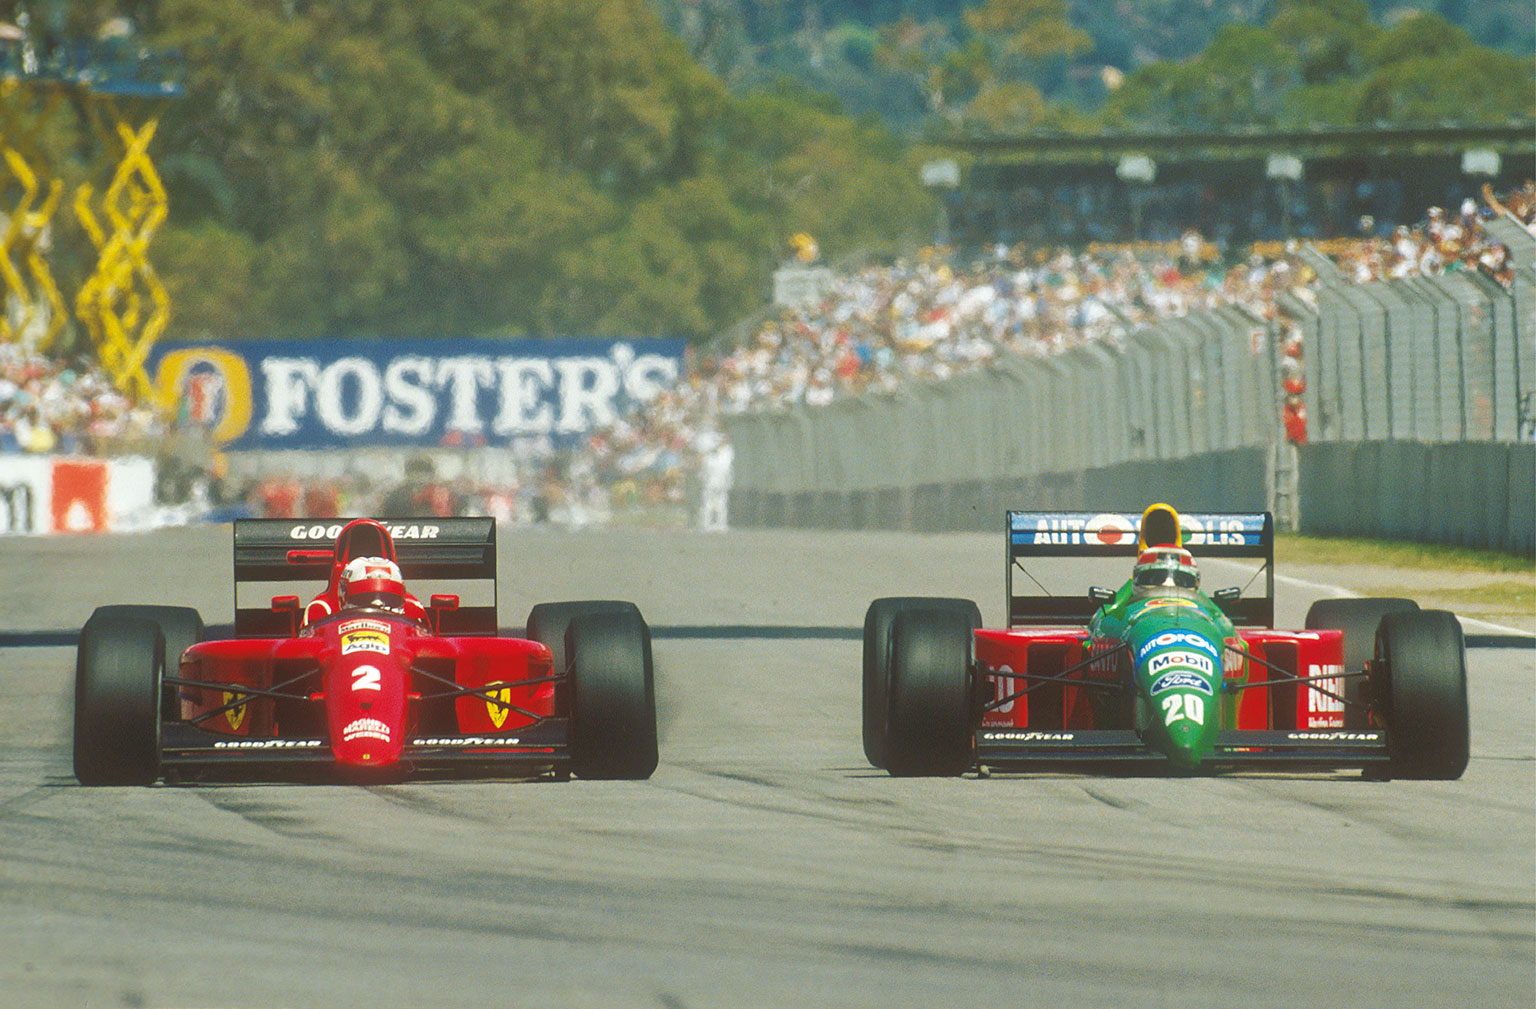 Rivals whether team-mates or not. Mansell and Piquet traded places on track and verbal insults off it. This is 1990, with Mansell in the Ferrari and Piquet with Benetton